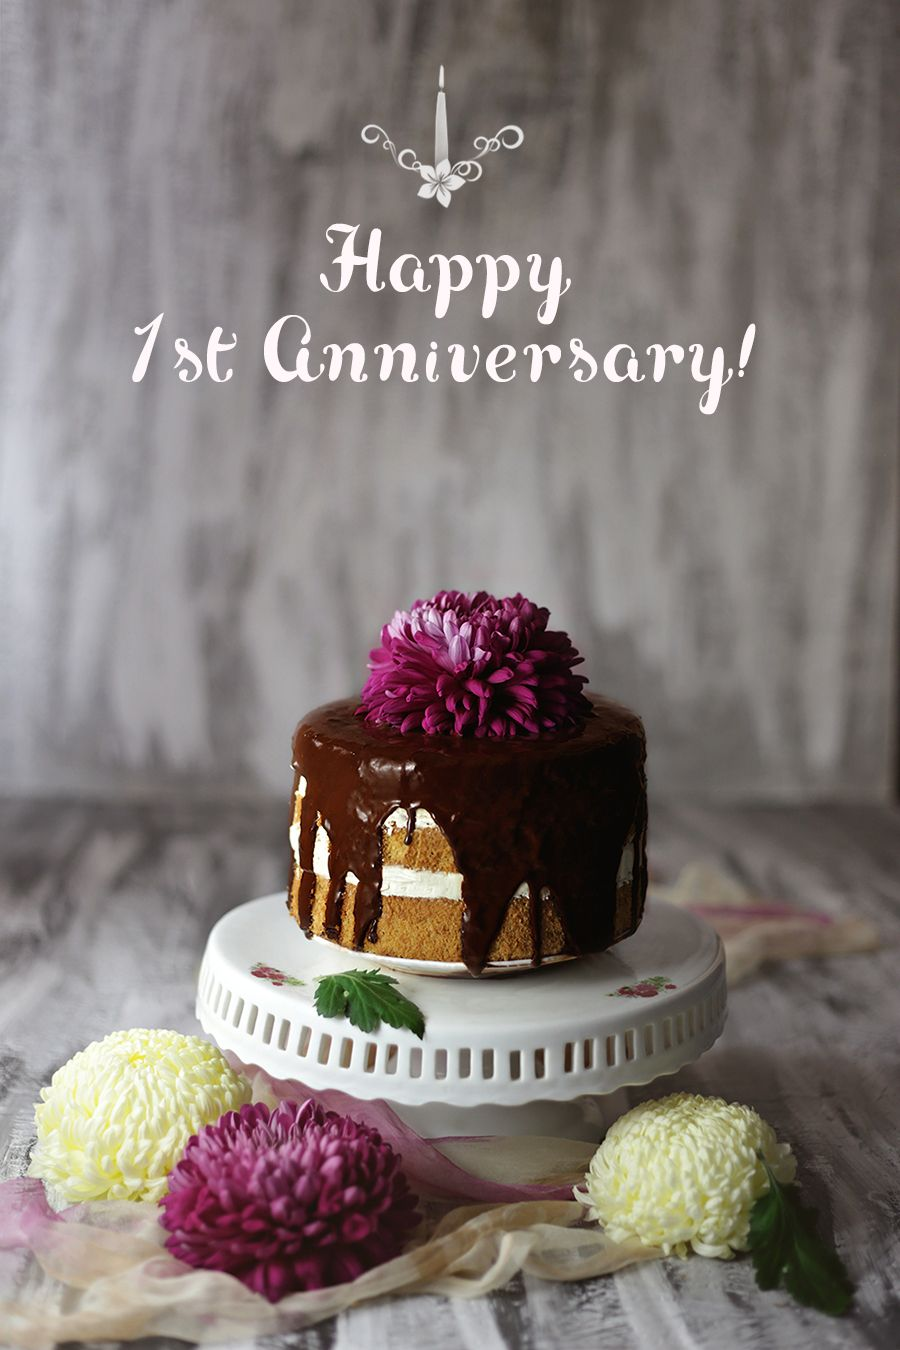 Happy 1st Anniversary Josh and Christy, have a wonderful